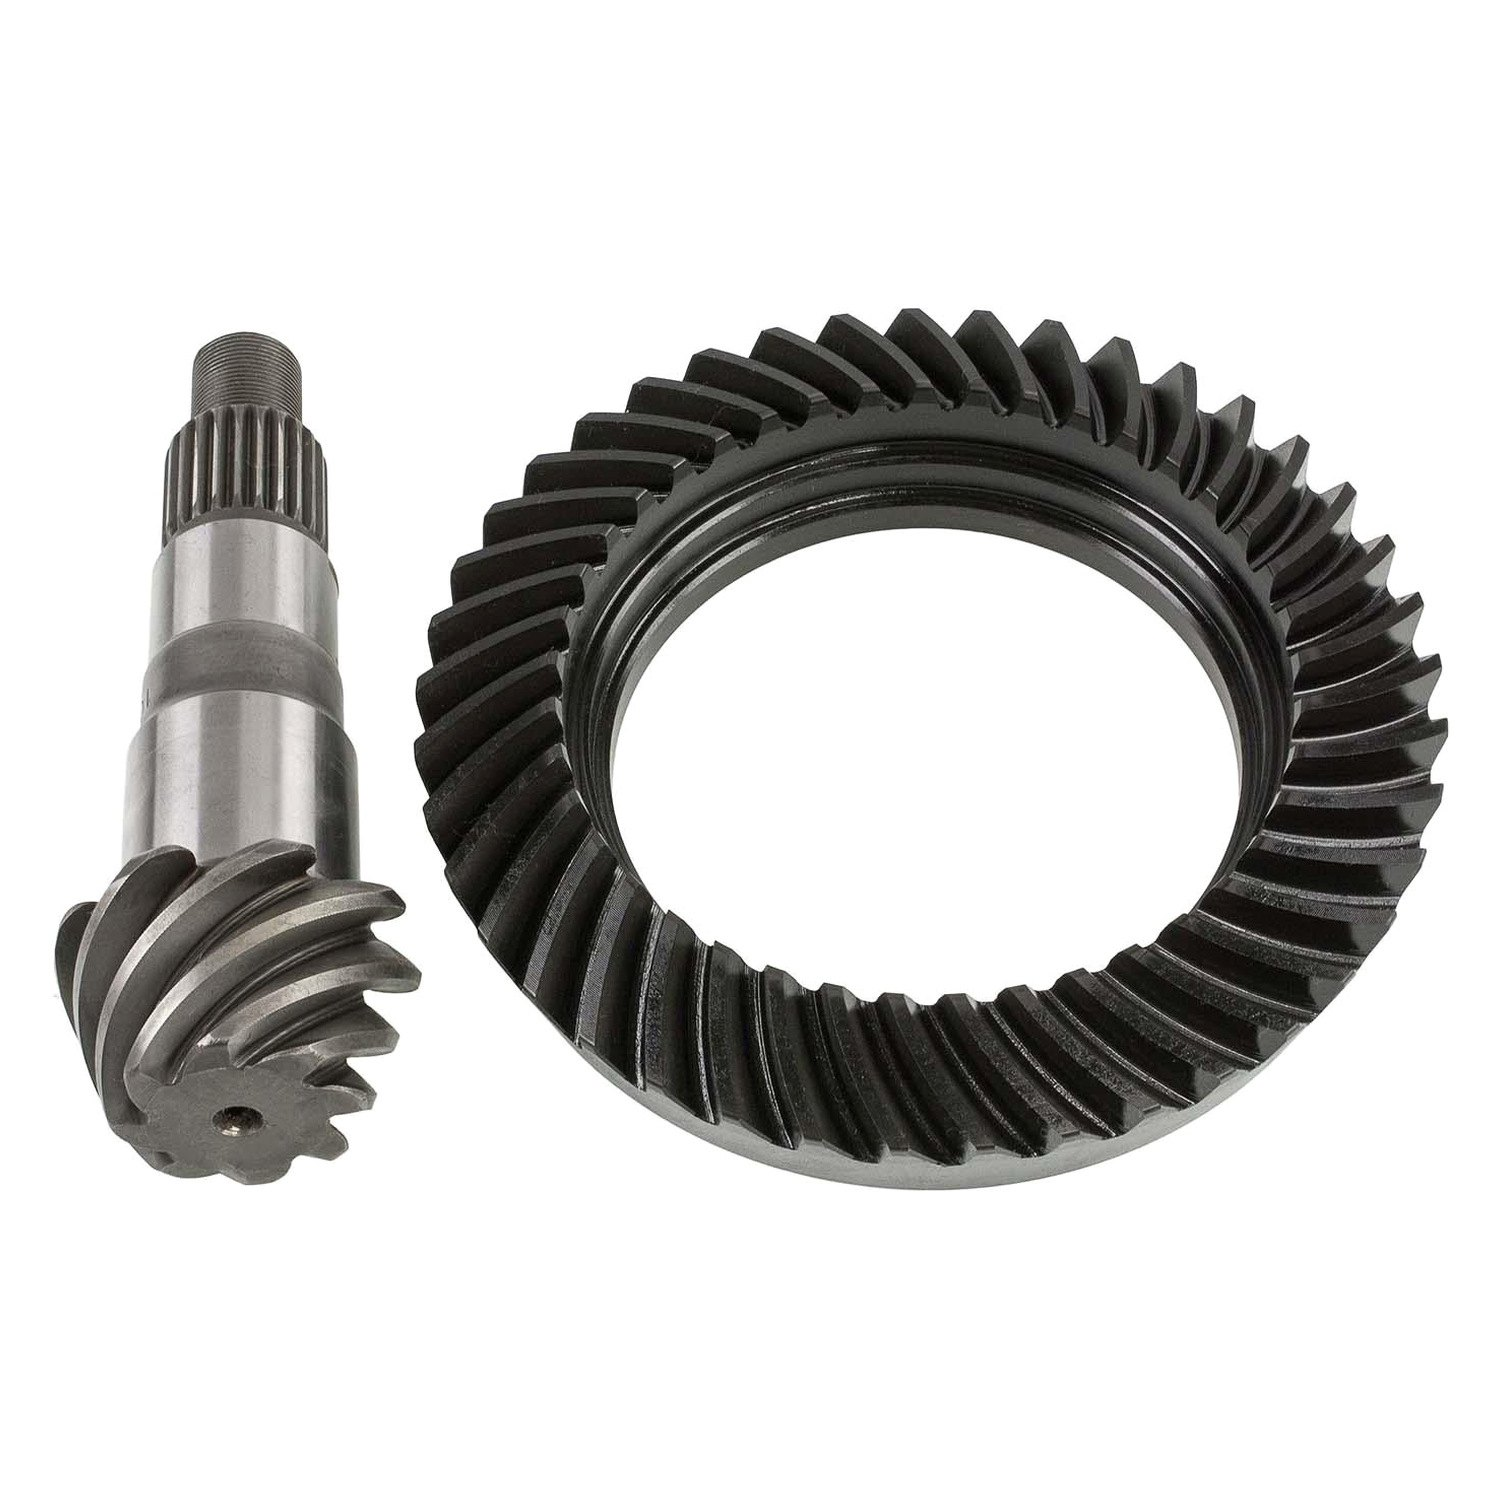 motive gear d30 513rjk front ring and pinion gear set